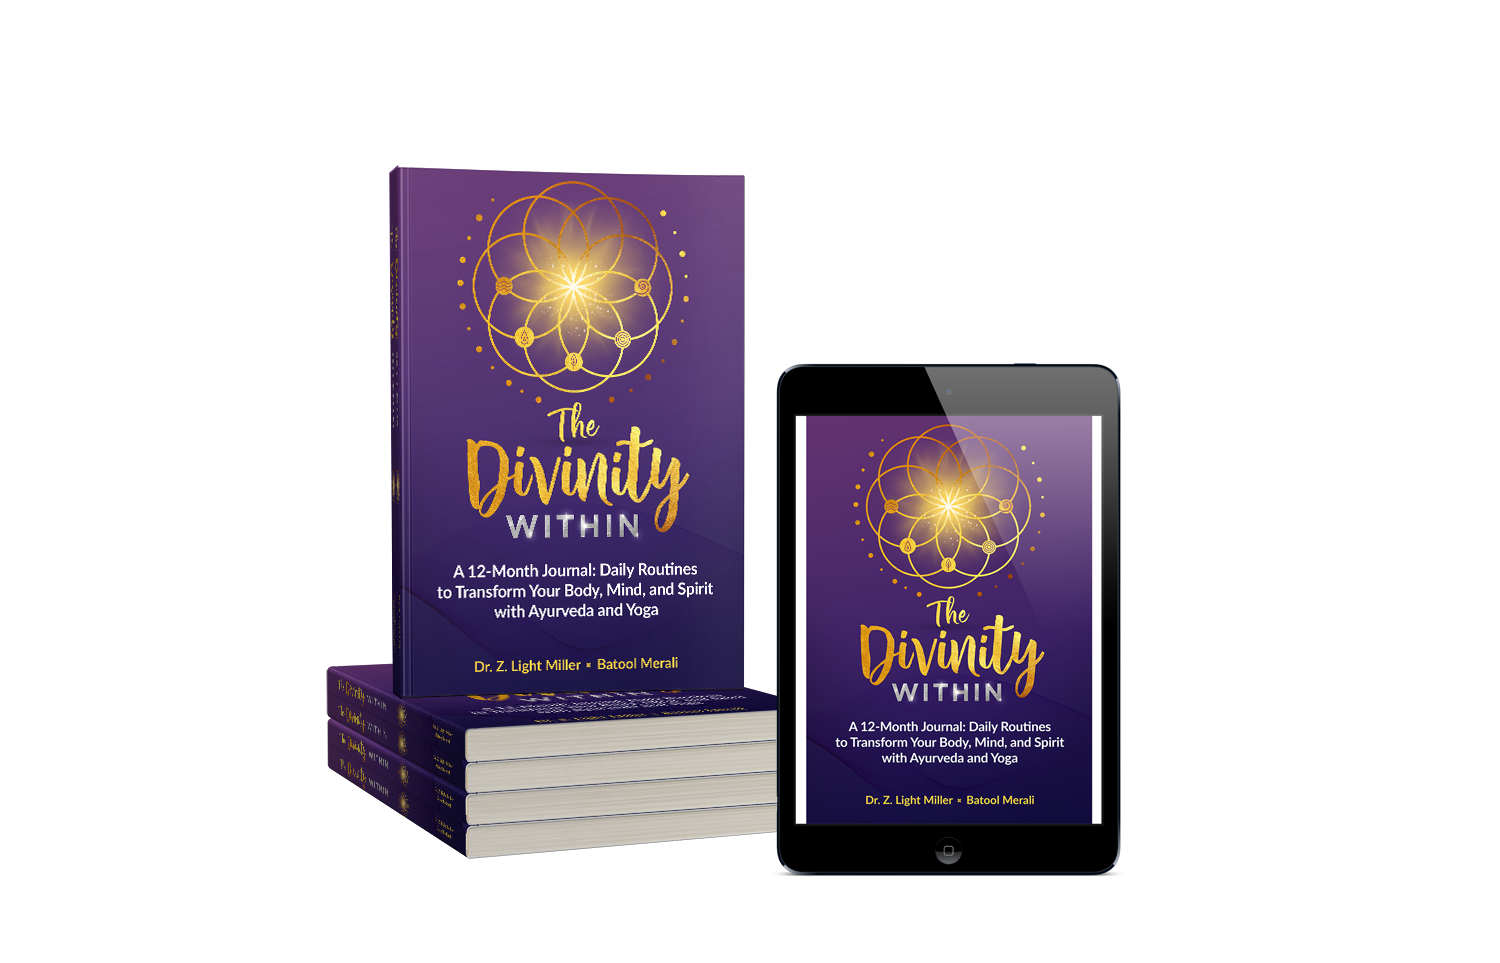 The Divine within book